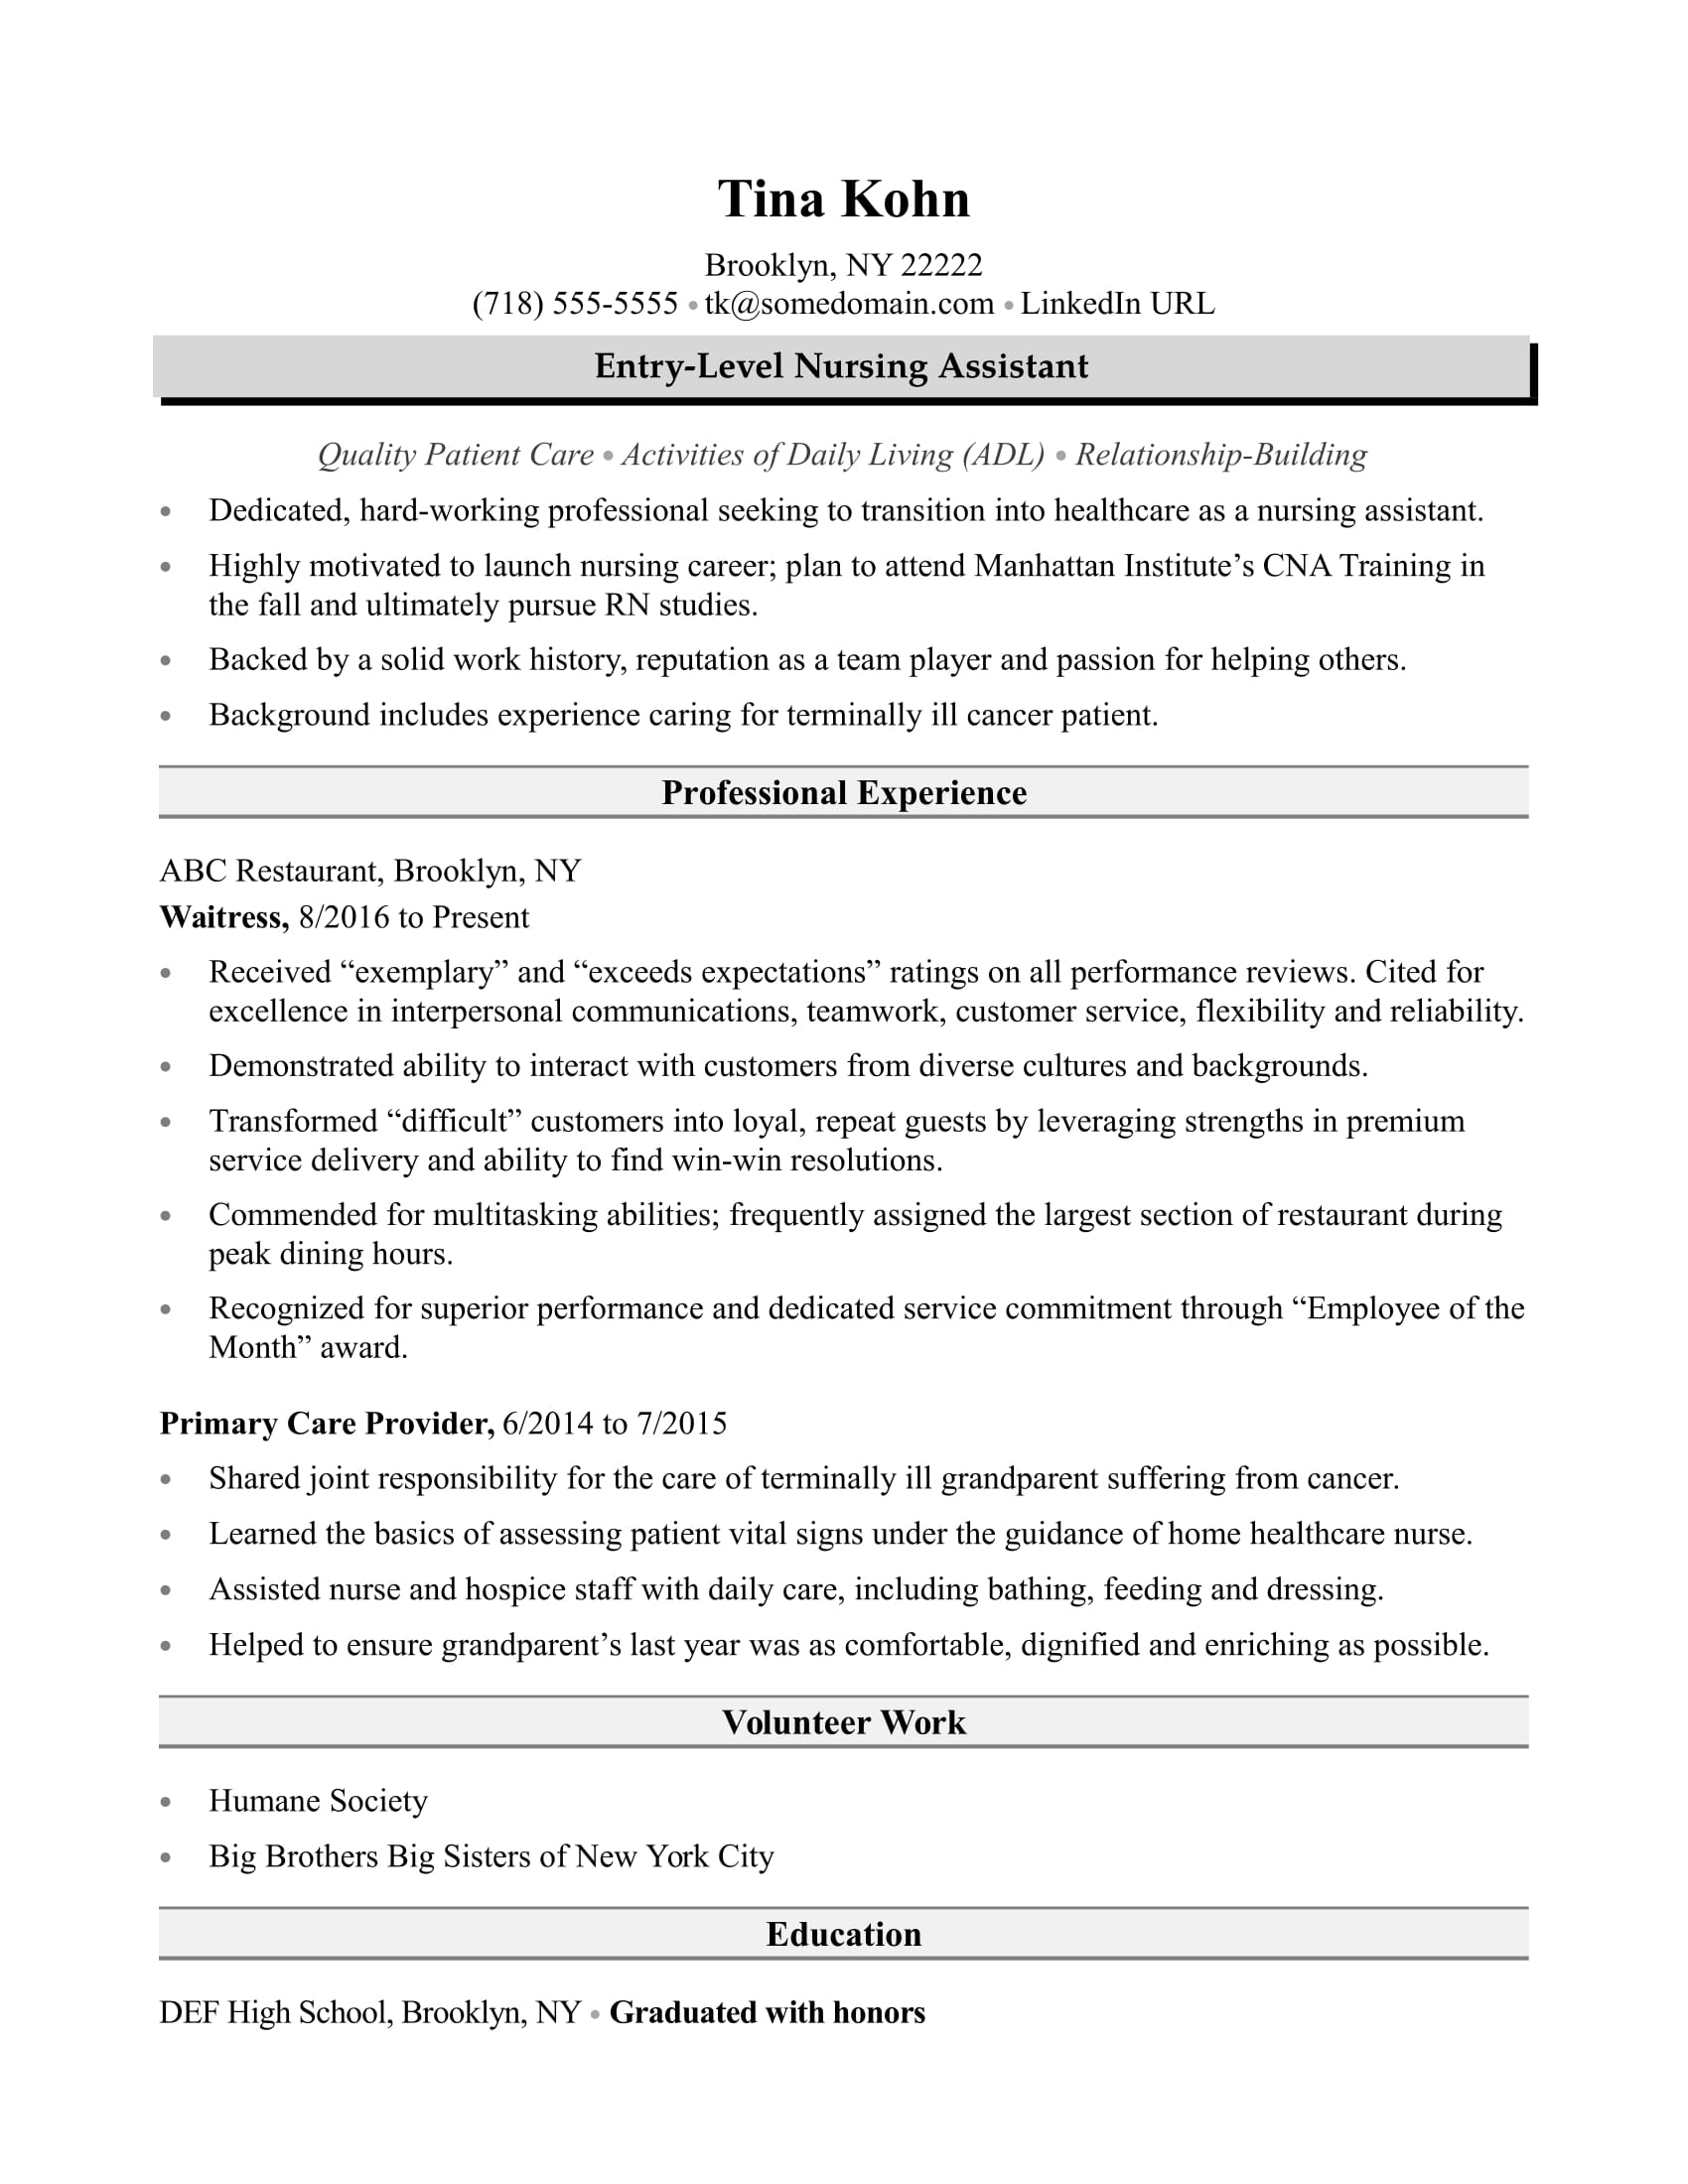 Nursing assistant resume sample for Cna cover letter with little experience